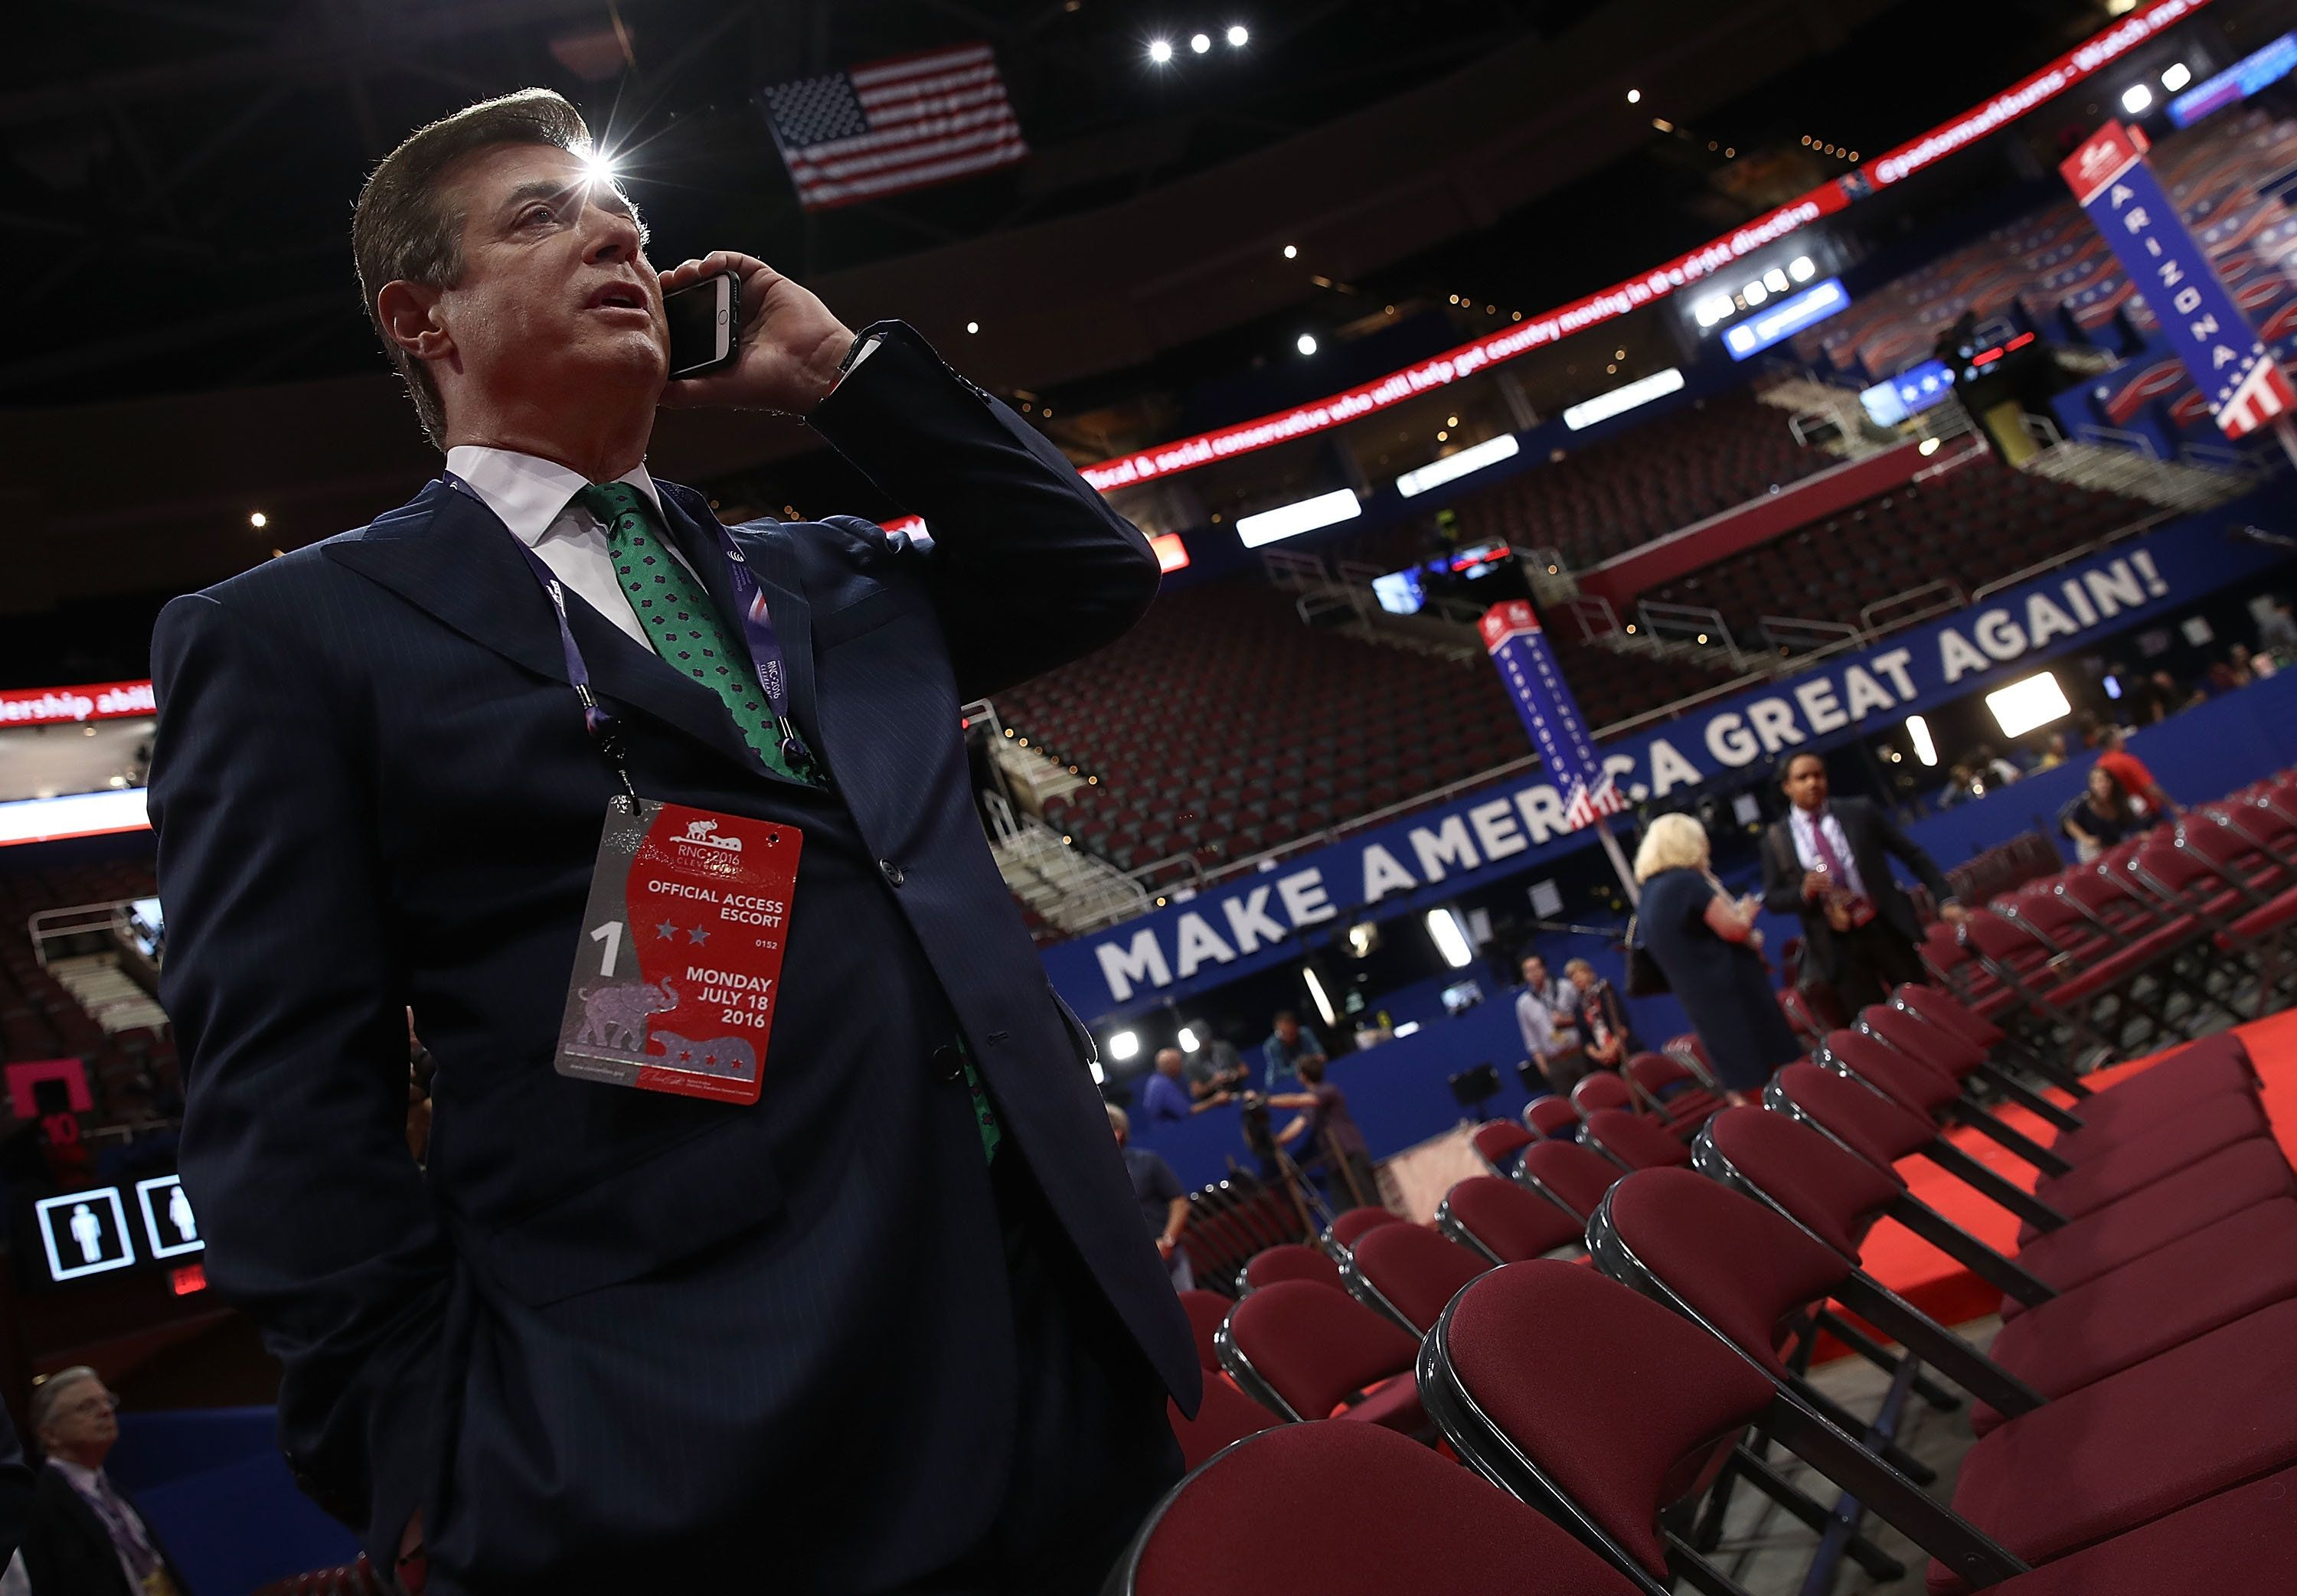 Paul Manafort makes a call while touring the floor of the Republican National Convention on July 17, 2016, in Cleveland, Ohio